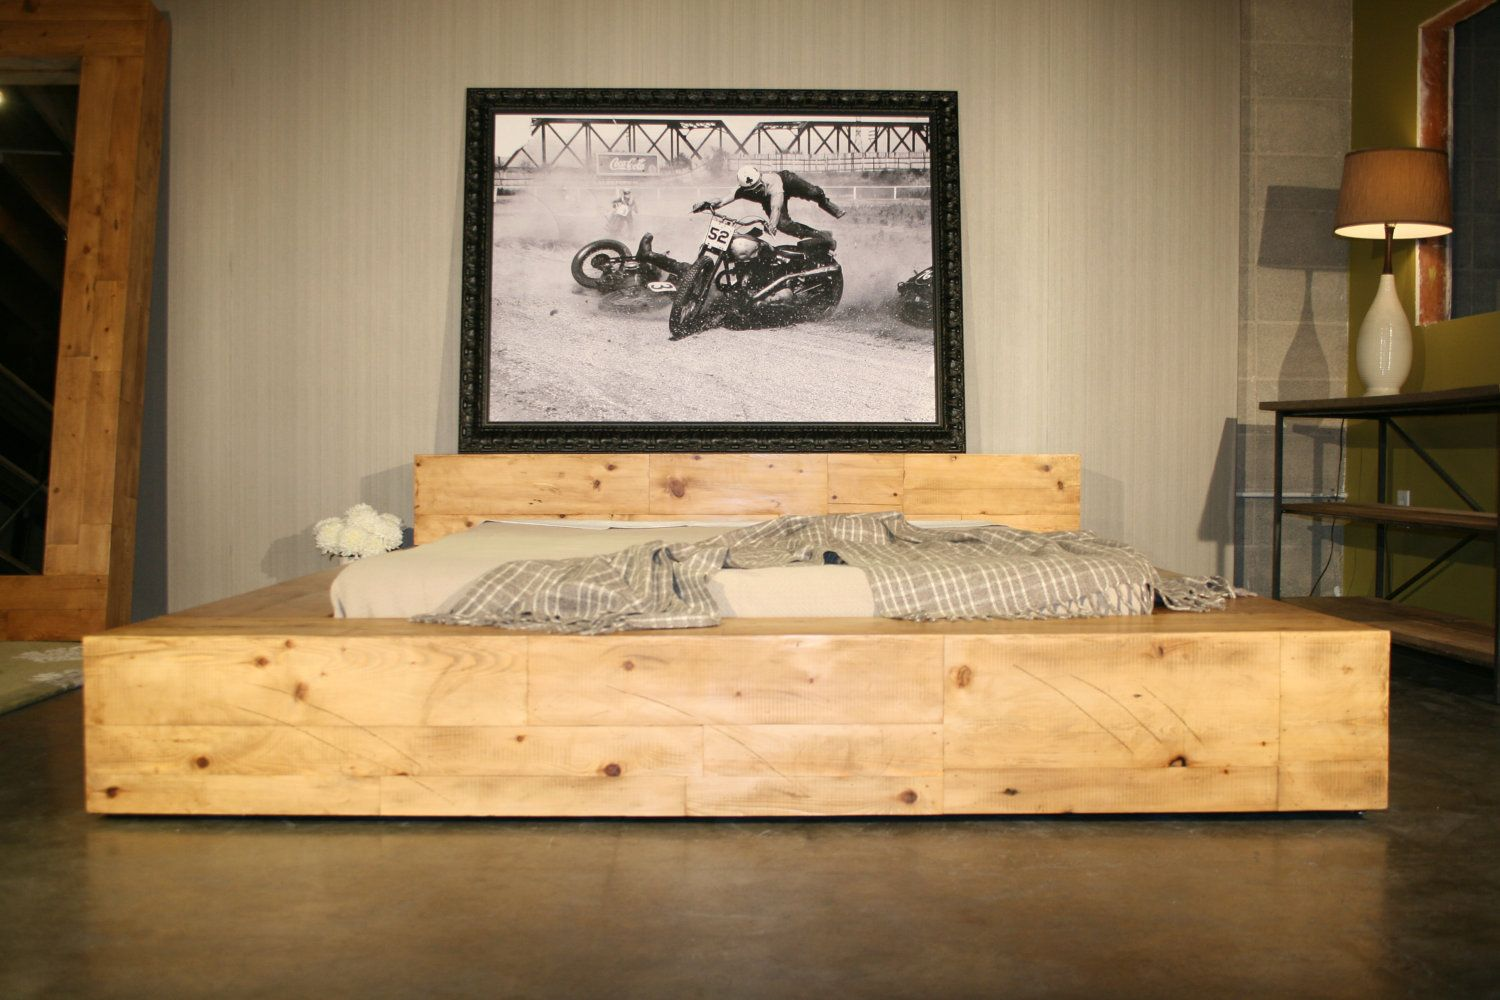 Reclaimed Wood Beam Bed Handmade With Reclaimed Pine From Nyc 2 Via Etsy For The